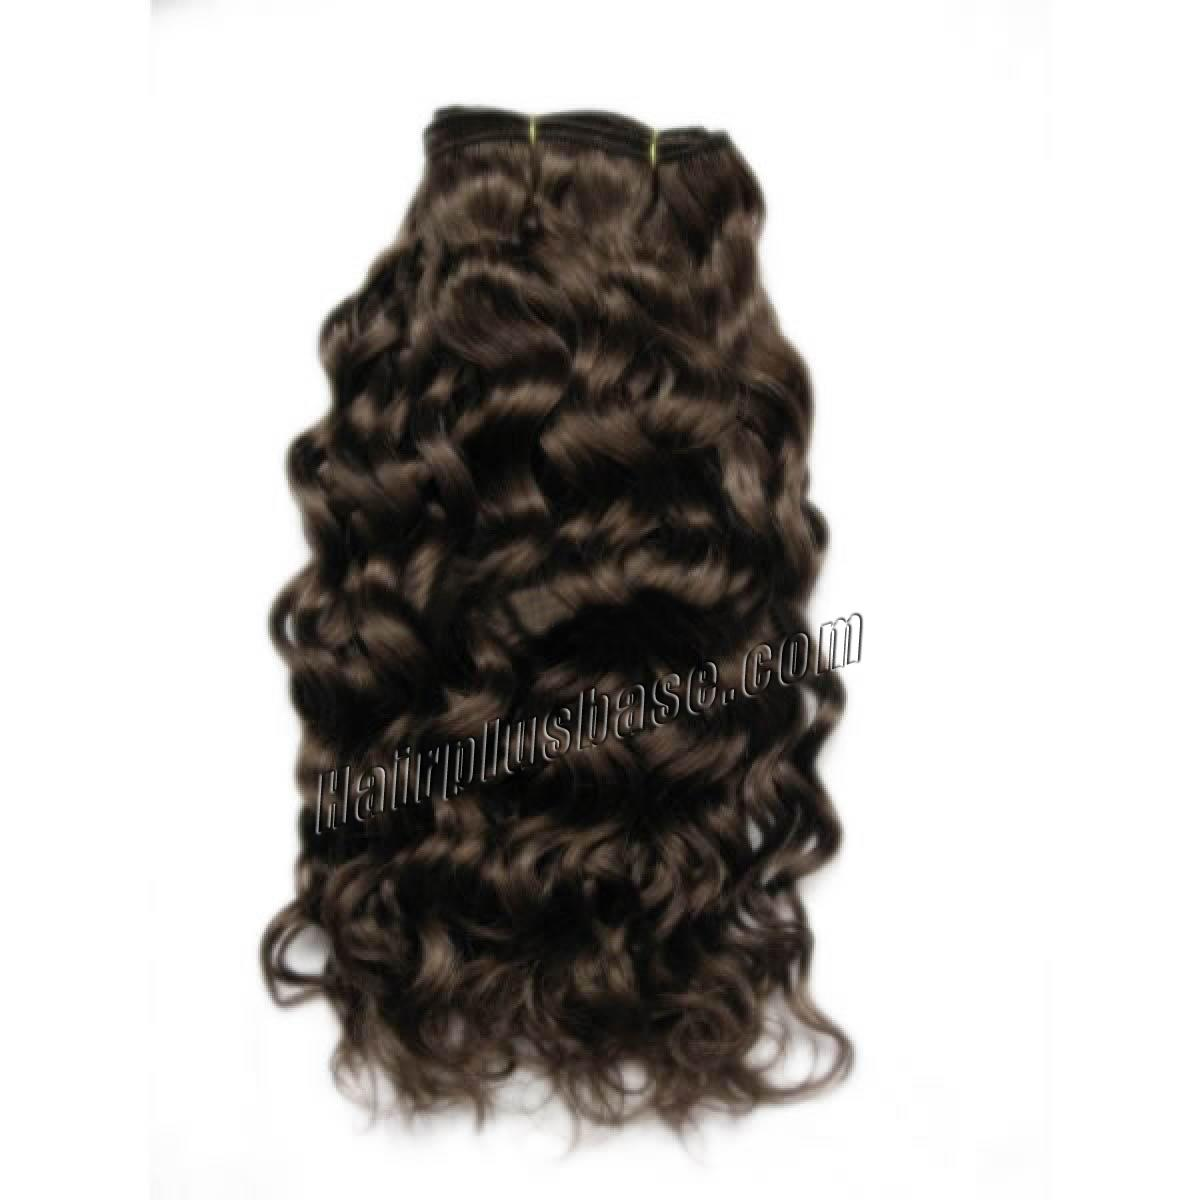 22 Inch #4 Medium Brown Curly Indian Remy Hair Wefts no 1